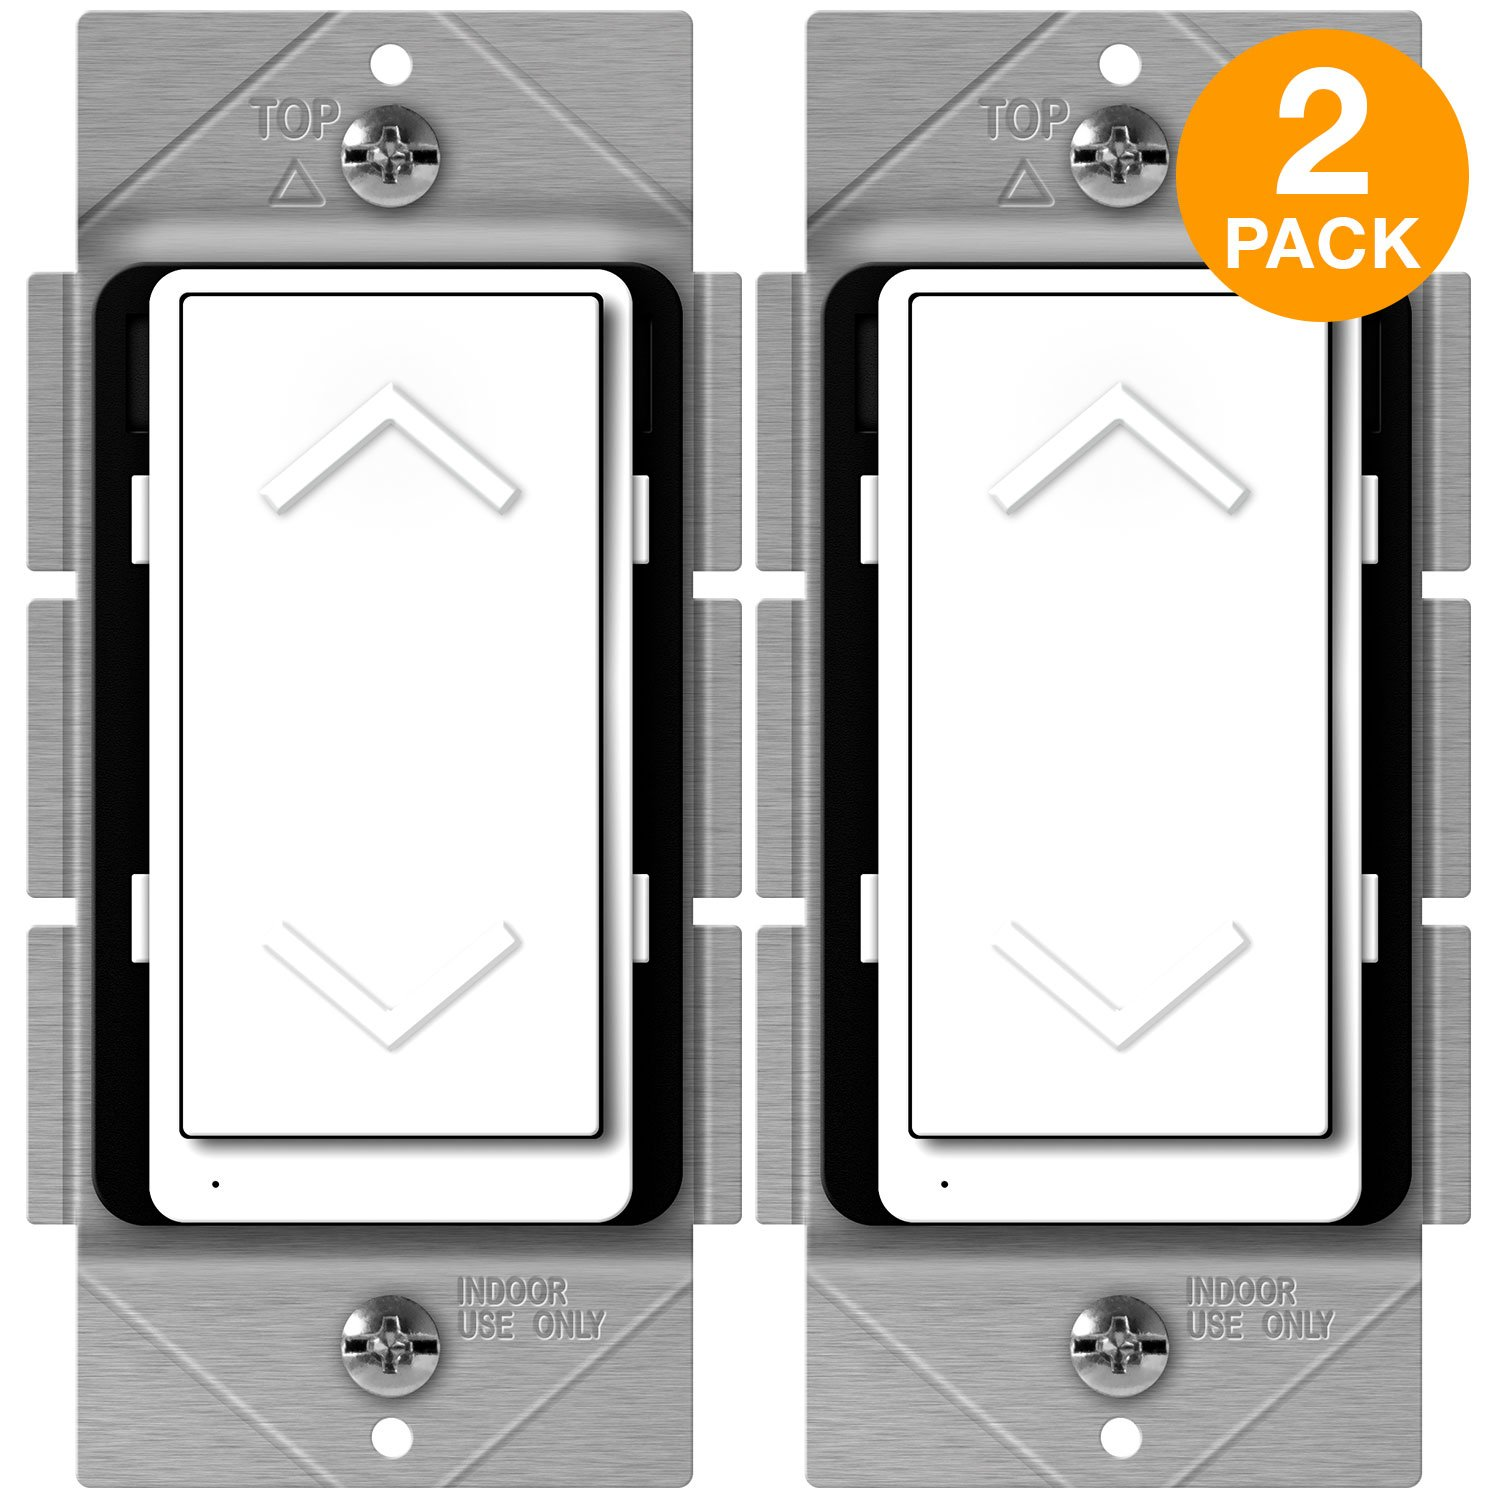 Enerwave Zw500dm Plus Z Wave Dimmer Smart Switch For Lighting Wiring Light With Neutral Zwave Home Automation Meter Energy Monitor Wire